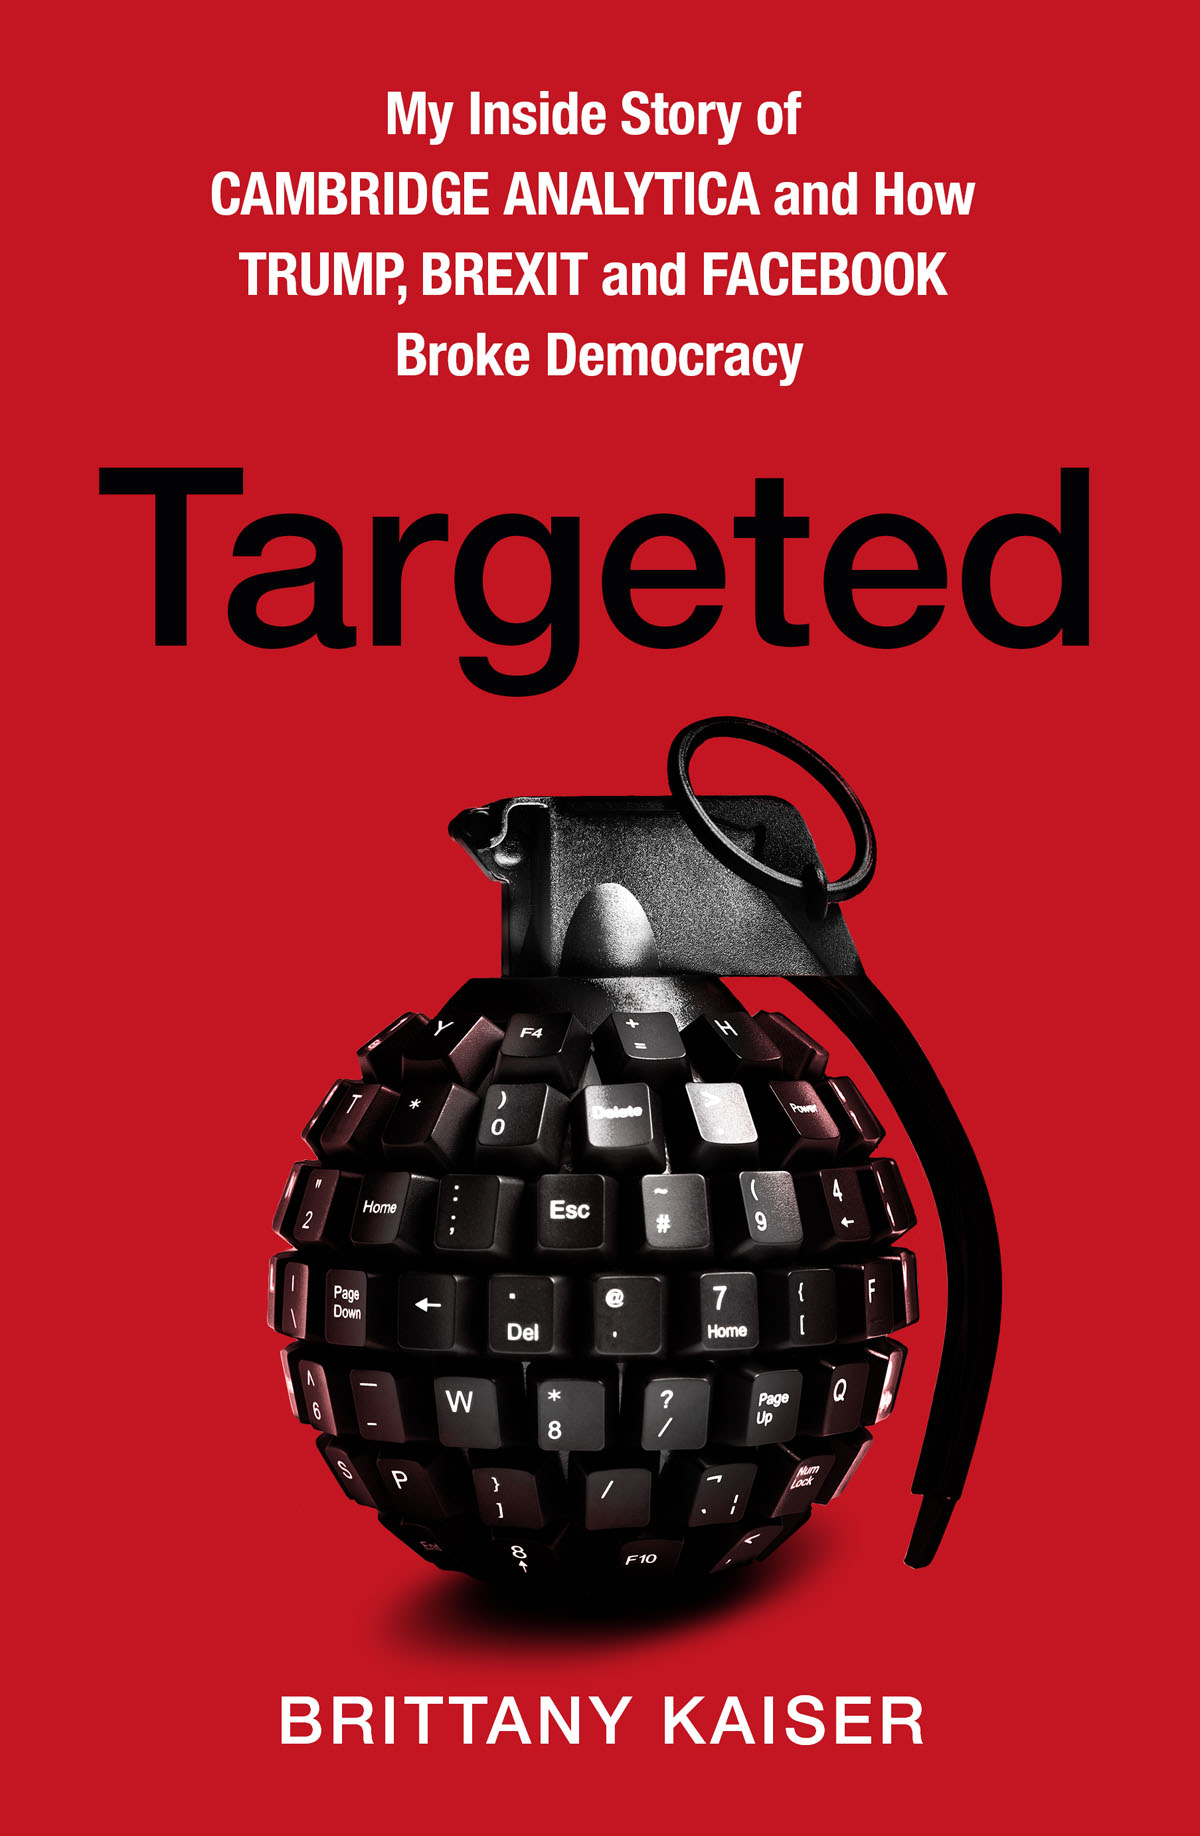 Купить книгу Targeted: My Inside Story of Cambridge Analytica and How Trump, Brexit and Facebook Broke Democracy, автора Brittany Kaiser